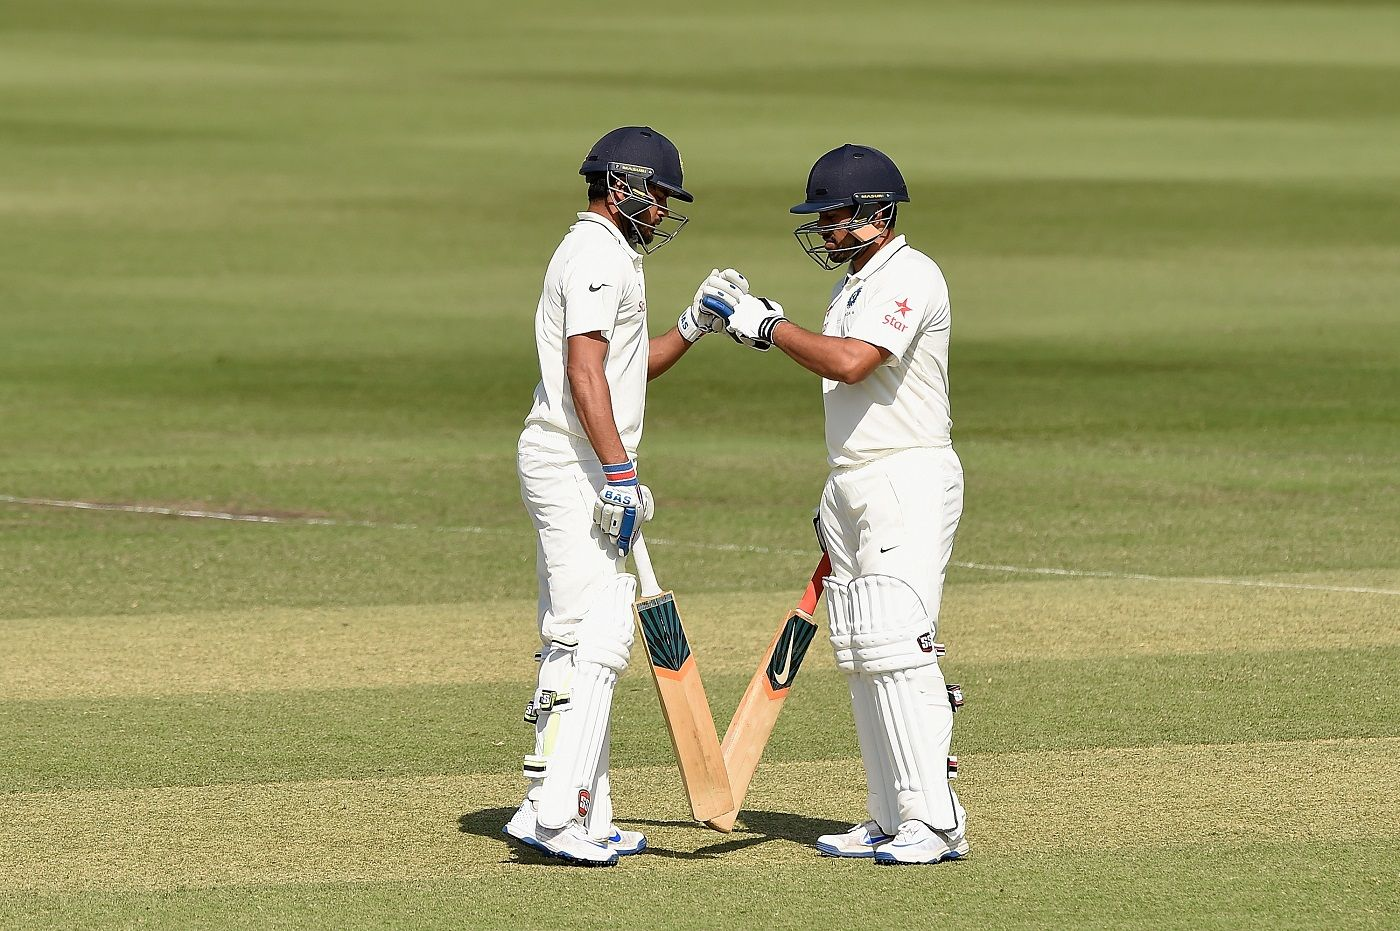 Karun Nair and Manish Pandey put on 129 runs for the fifth wicket to polish off the chase | Getty